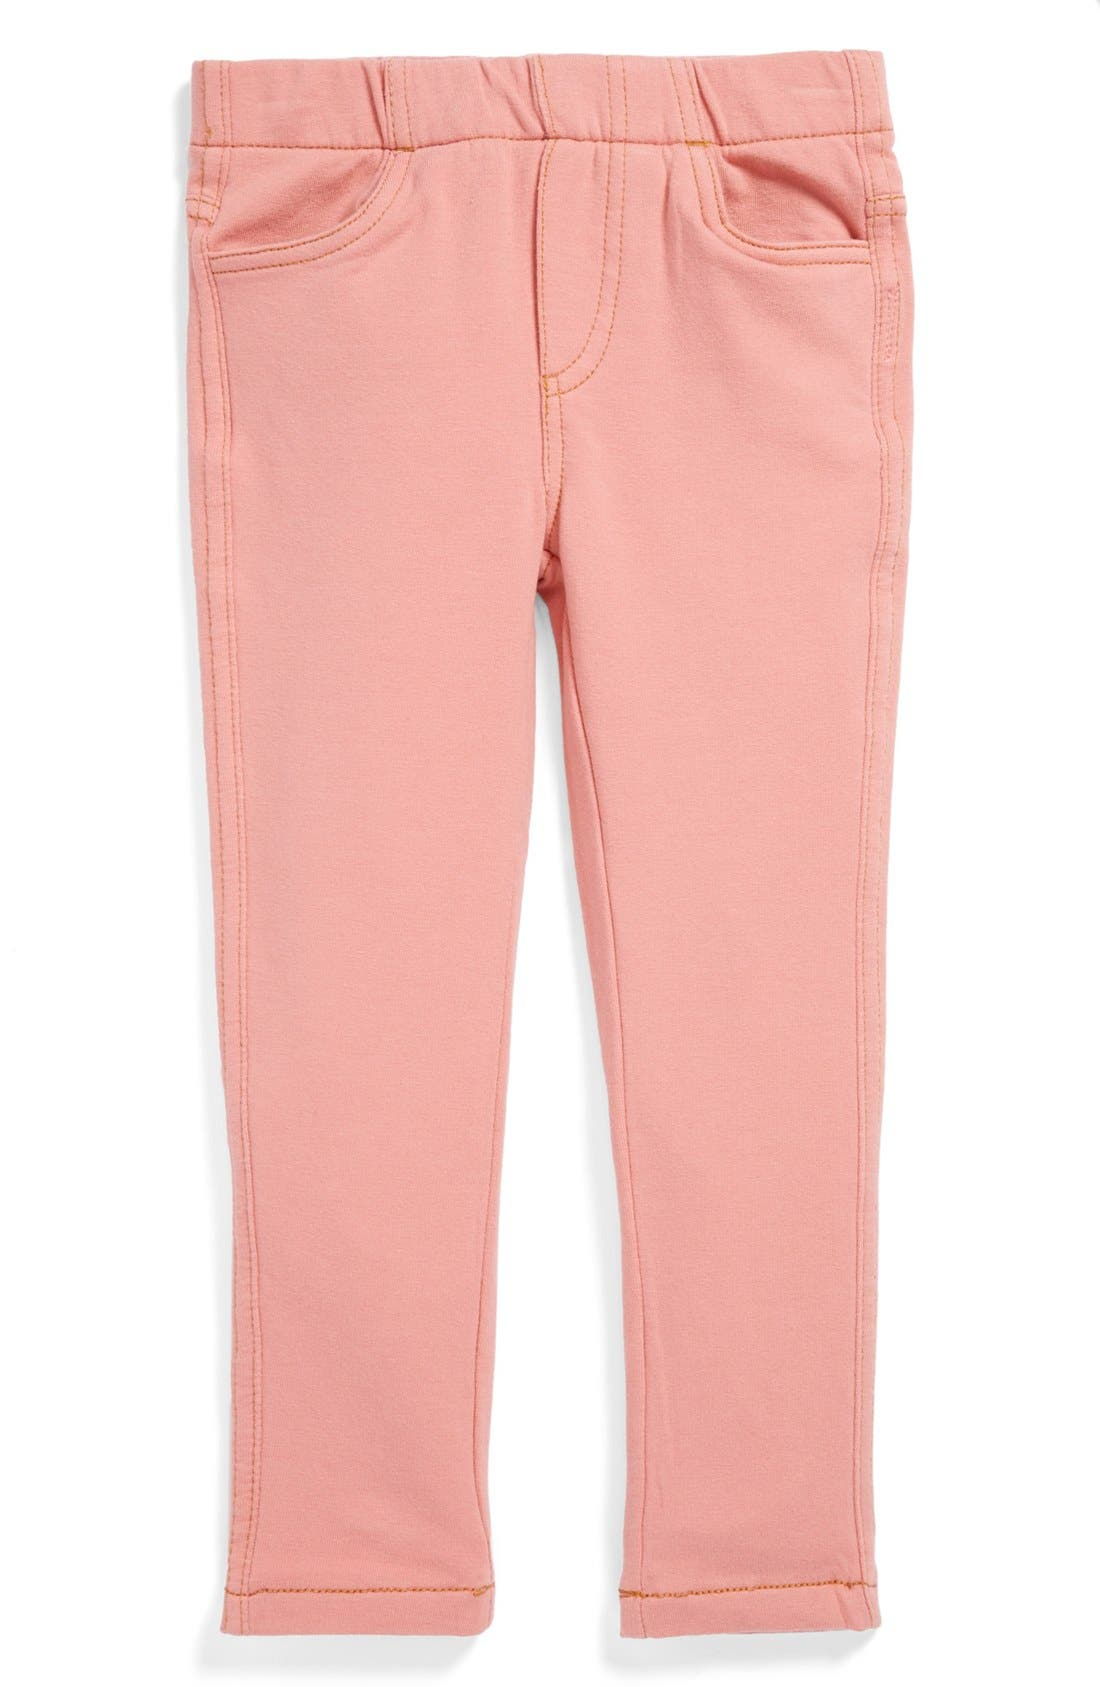 Main Image - Tucker + Tate 'Sadie' Jeggings (Toddler Girls)